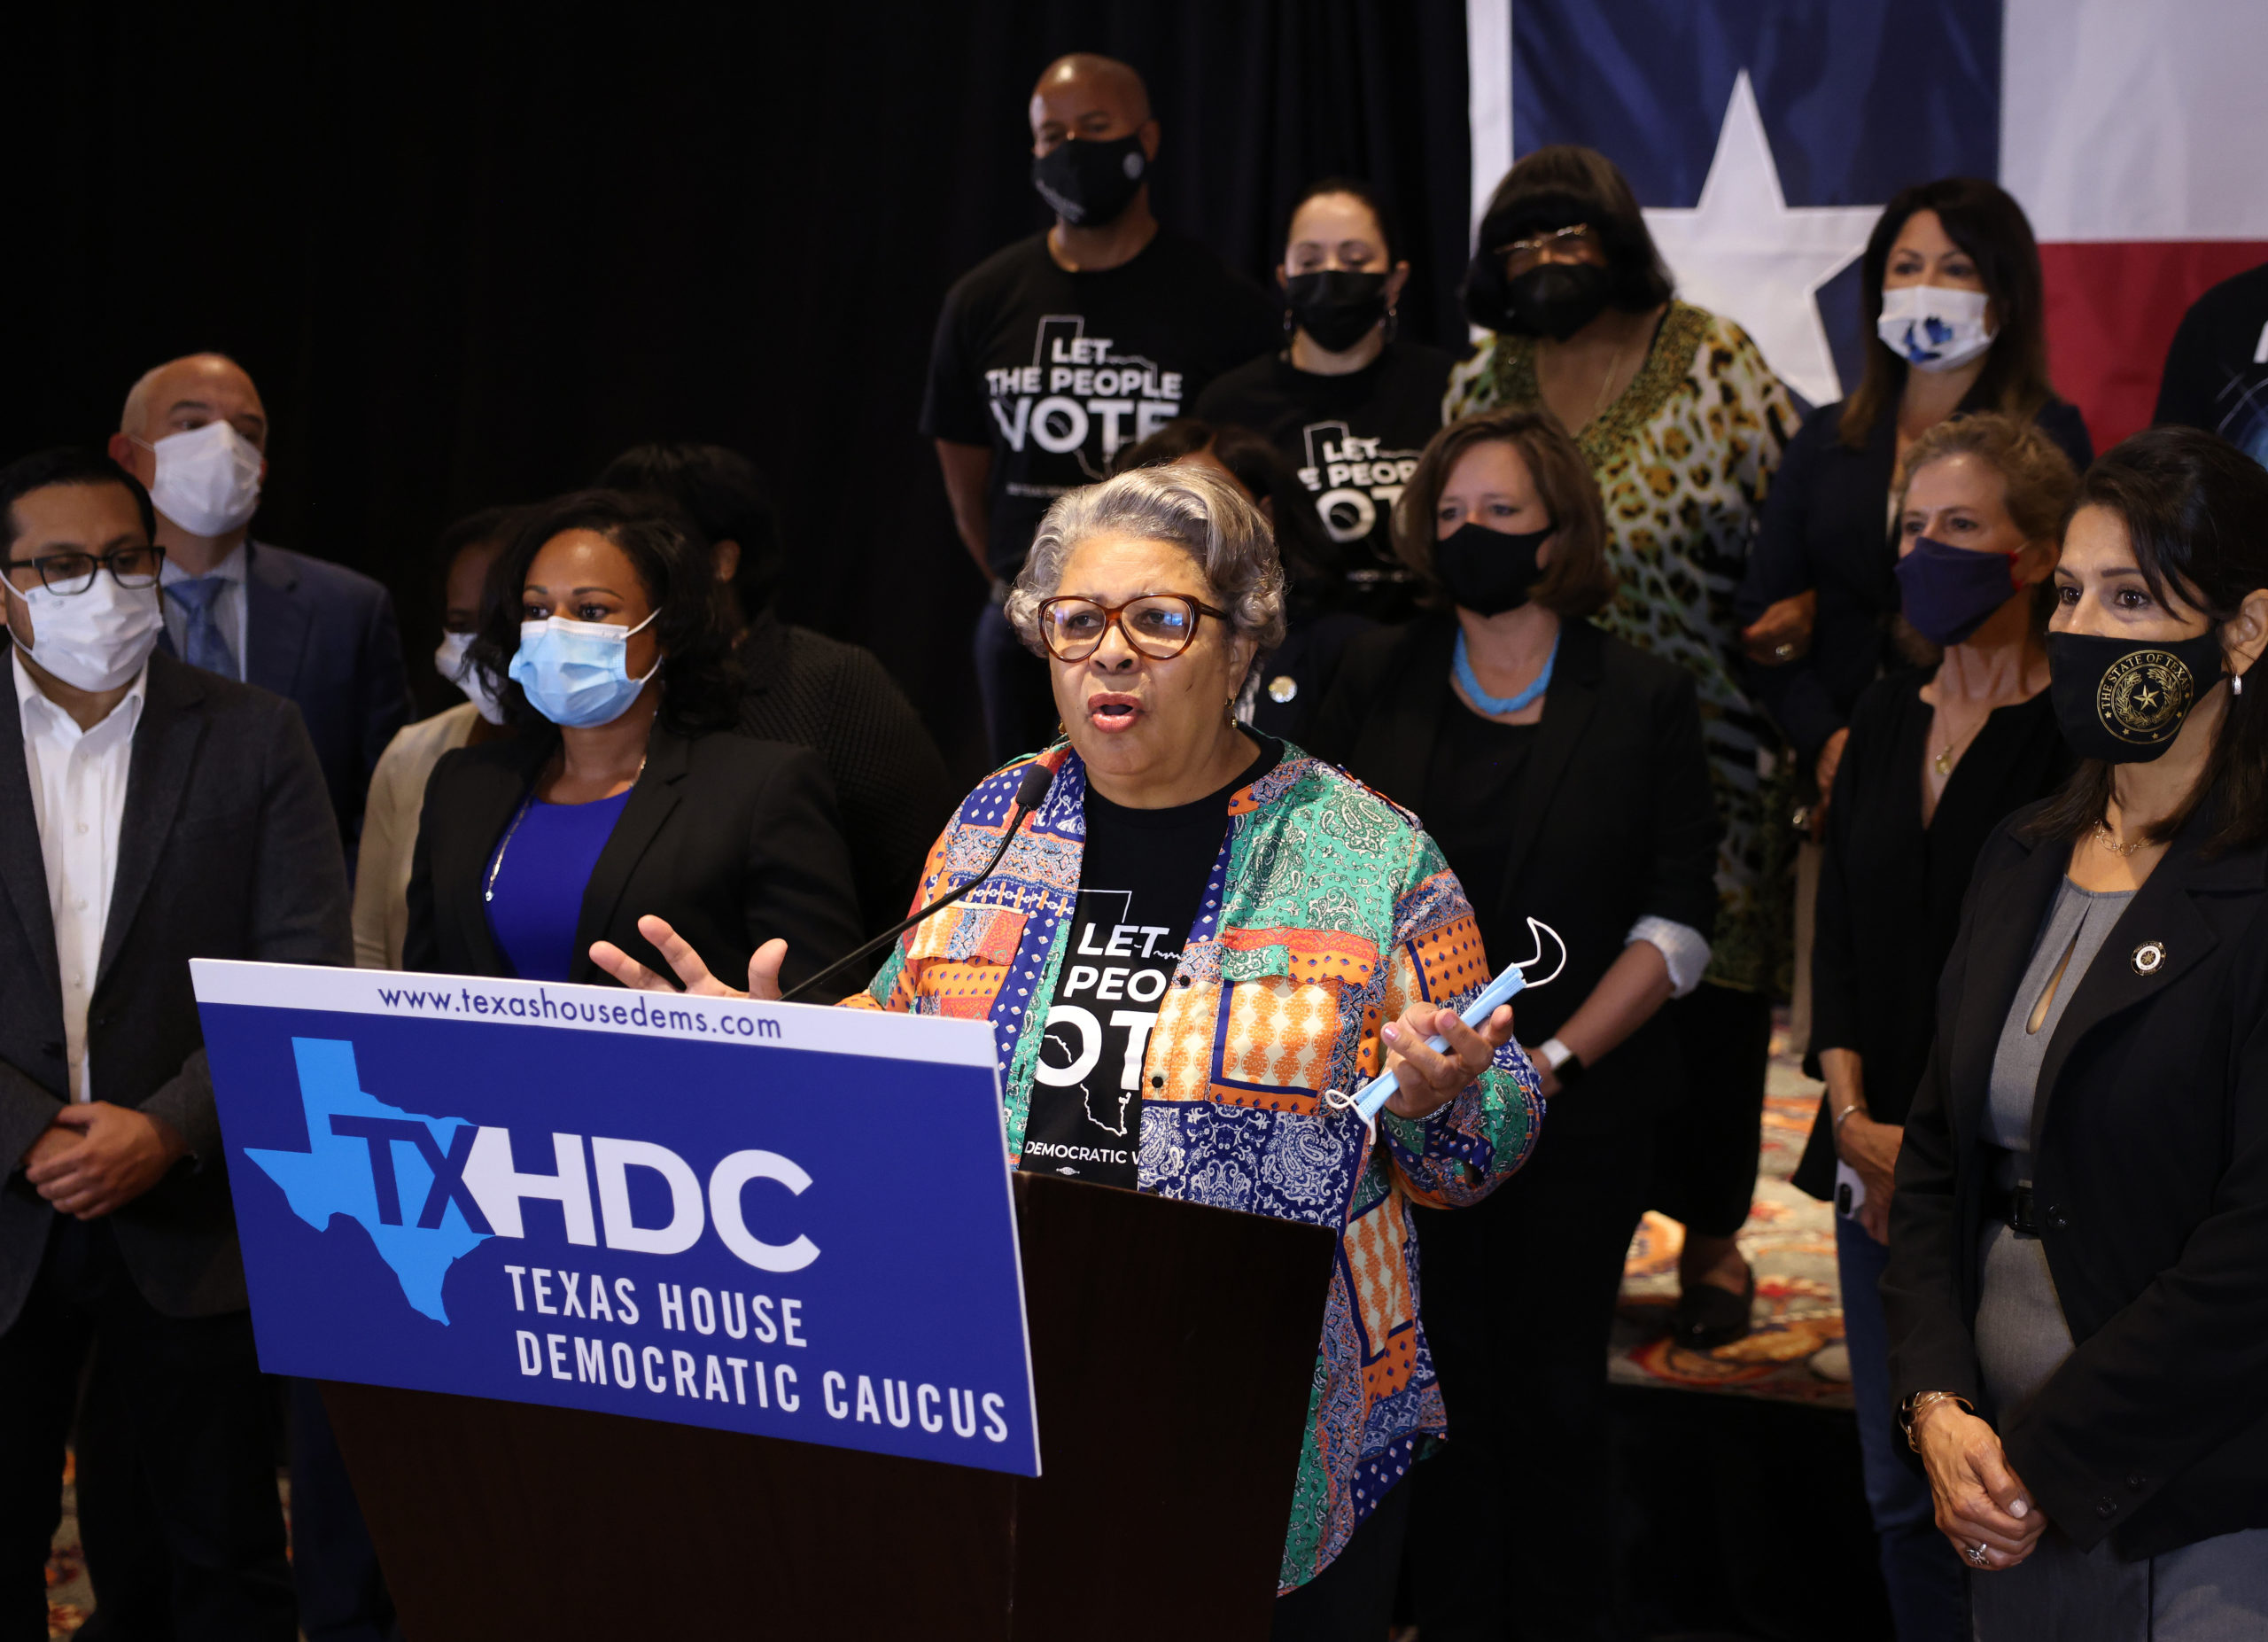 Texas State Rep. Senfronia Thompson (D-District 141), joined by fellow Texas state representatives, speaks at a press conference on voting rights, on July 30, 2021 in Washington, DC. (Photo by Kevin Dietsch/Getty Images)